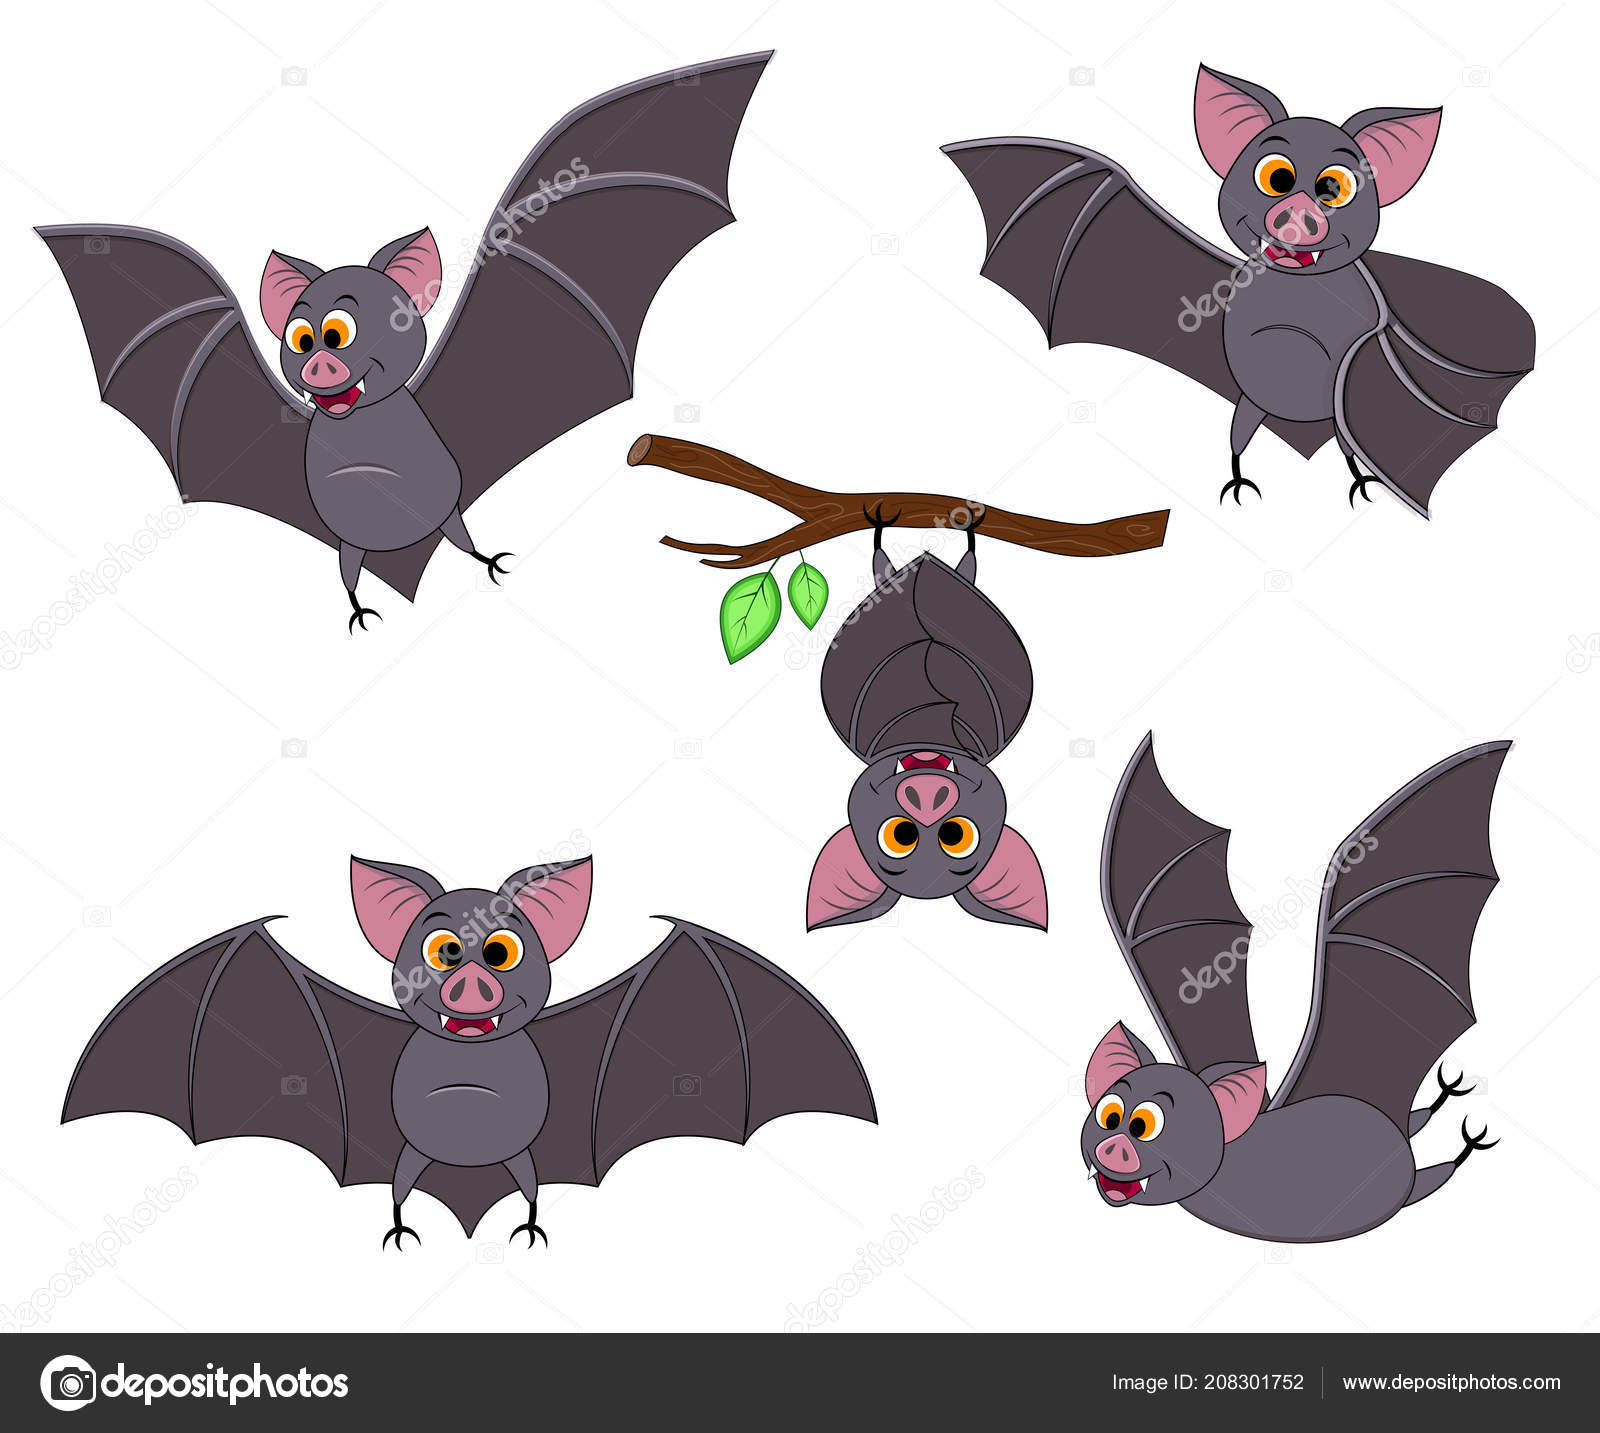 A Picture Of A Cartoon Bat cartoon bat in different poses. halloween elements set